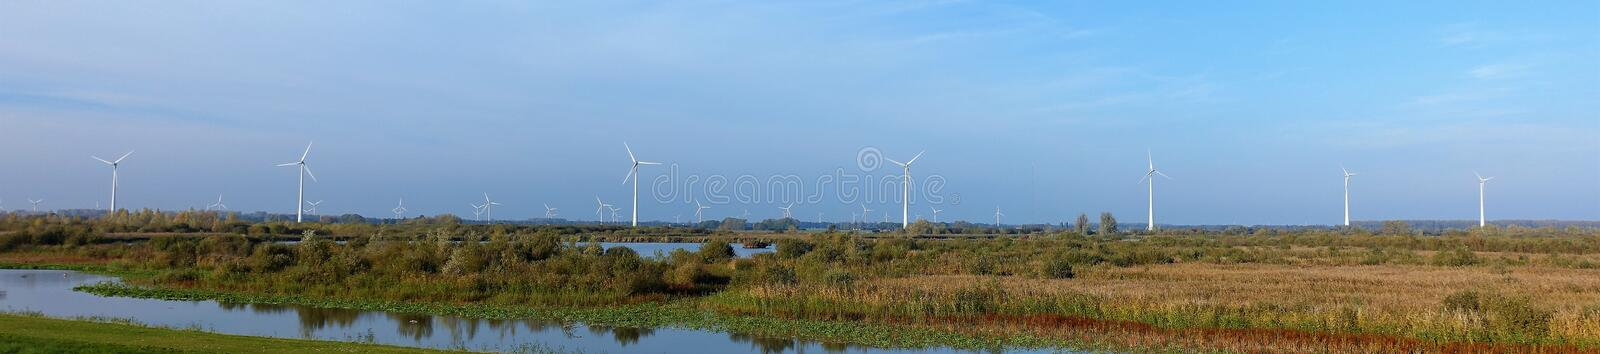 Windmills at the Harderbroek Flevoland. Flevoland and windmills belong together. Autumn brings brown and yellow colours royalty free stock photo